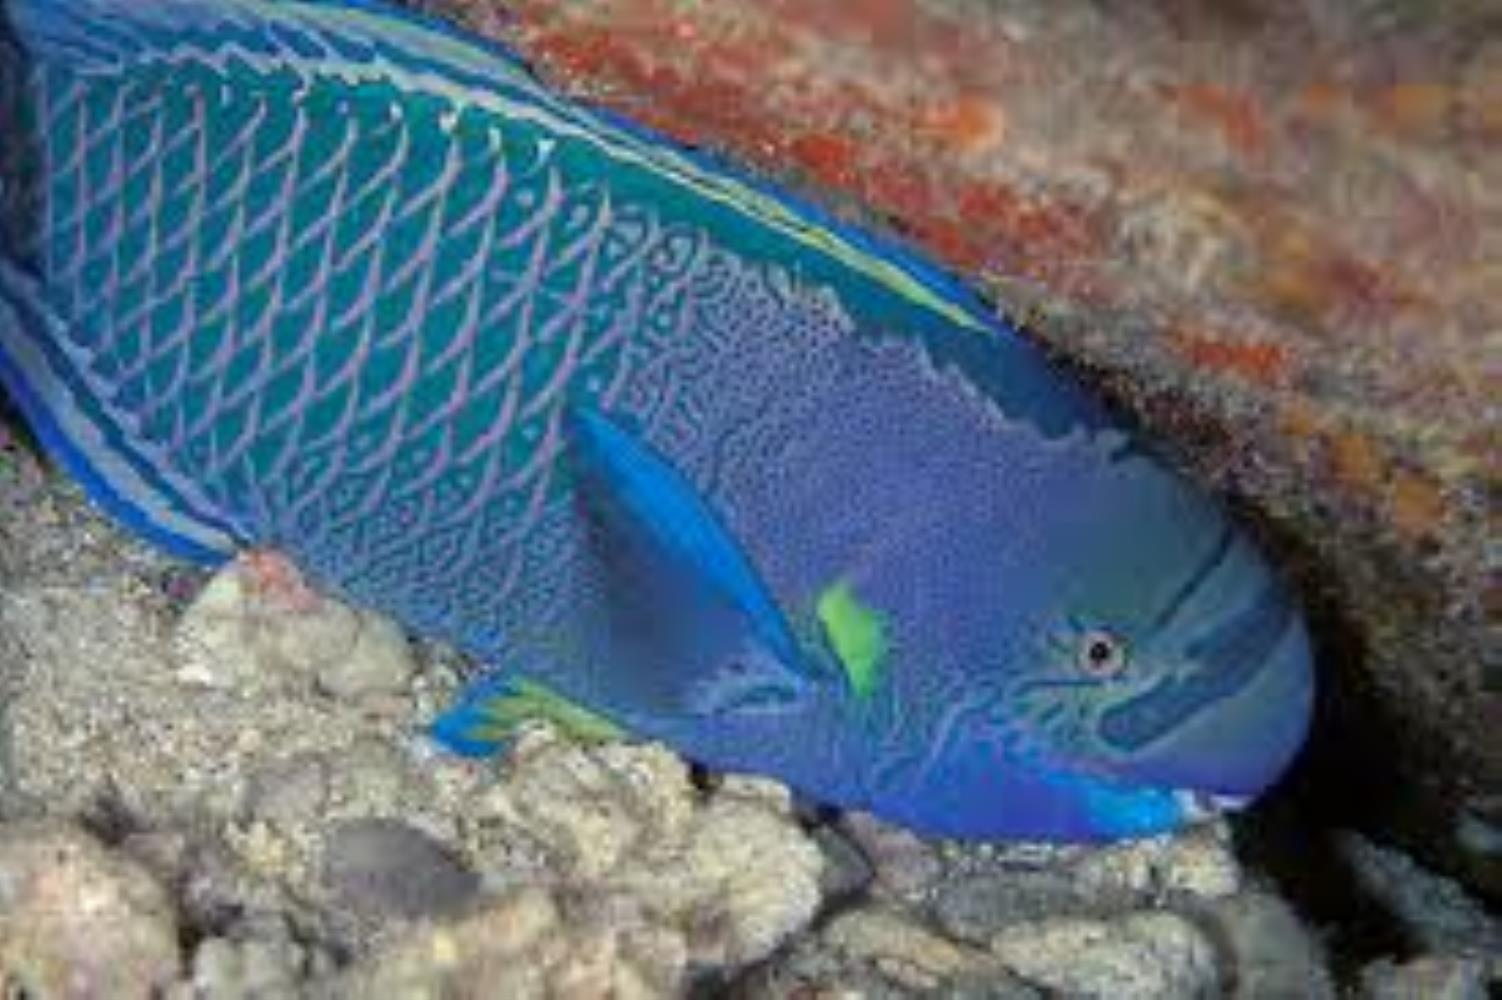 Spectacled Parrotfish